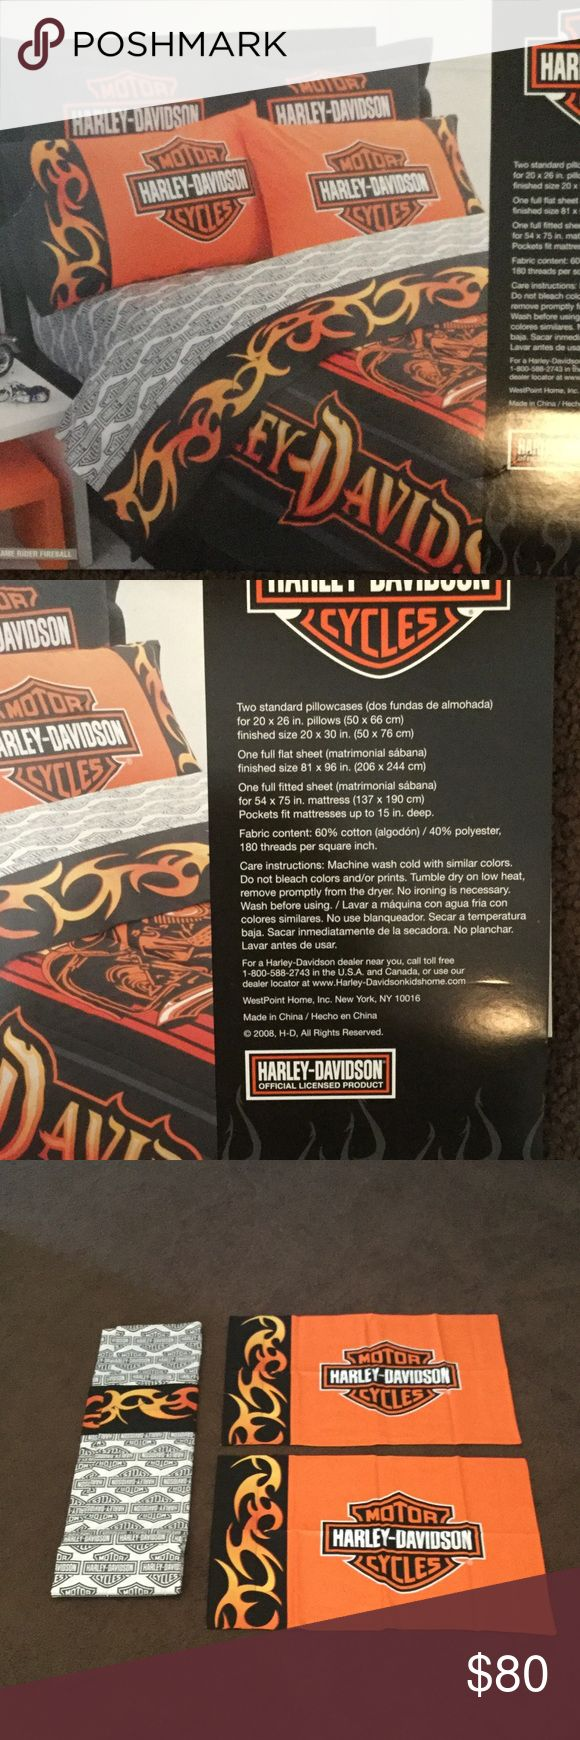 """Harley Davidson Full Sheet Set Brand new, without tags. Harley-Davidson Motorcycles full sheet set. Includes 2 pillow cases, fitted sheet, and flat sheet. See dimensions in the photo. 60% cotton, 40% polyester. 180 threads per square inch. Fitted sheet pockets fits mattresses up to 15"""" deep. Harley-Davidson Other"""